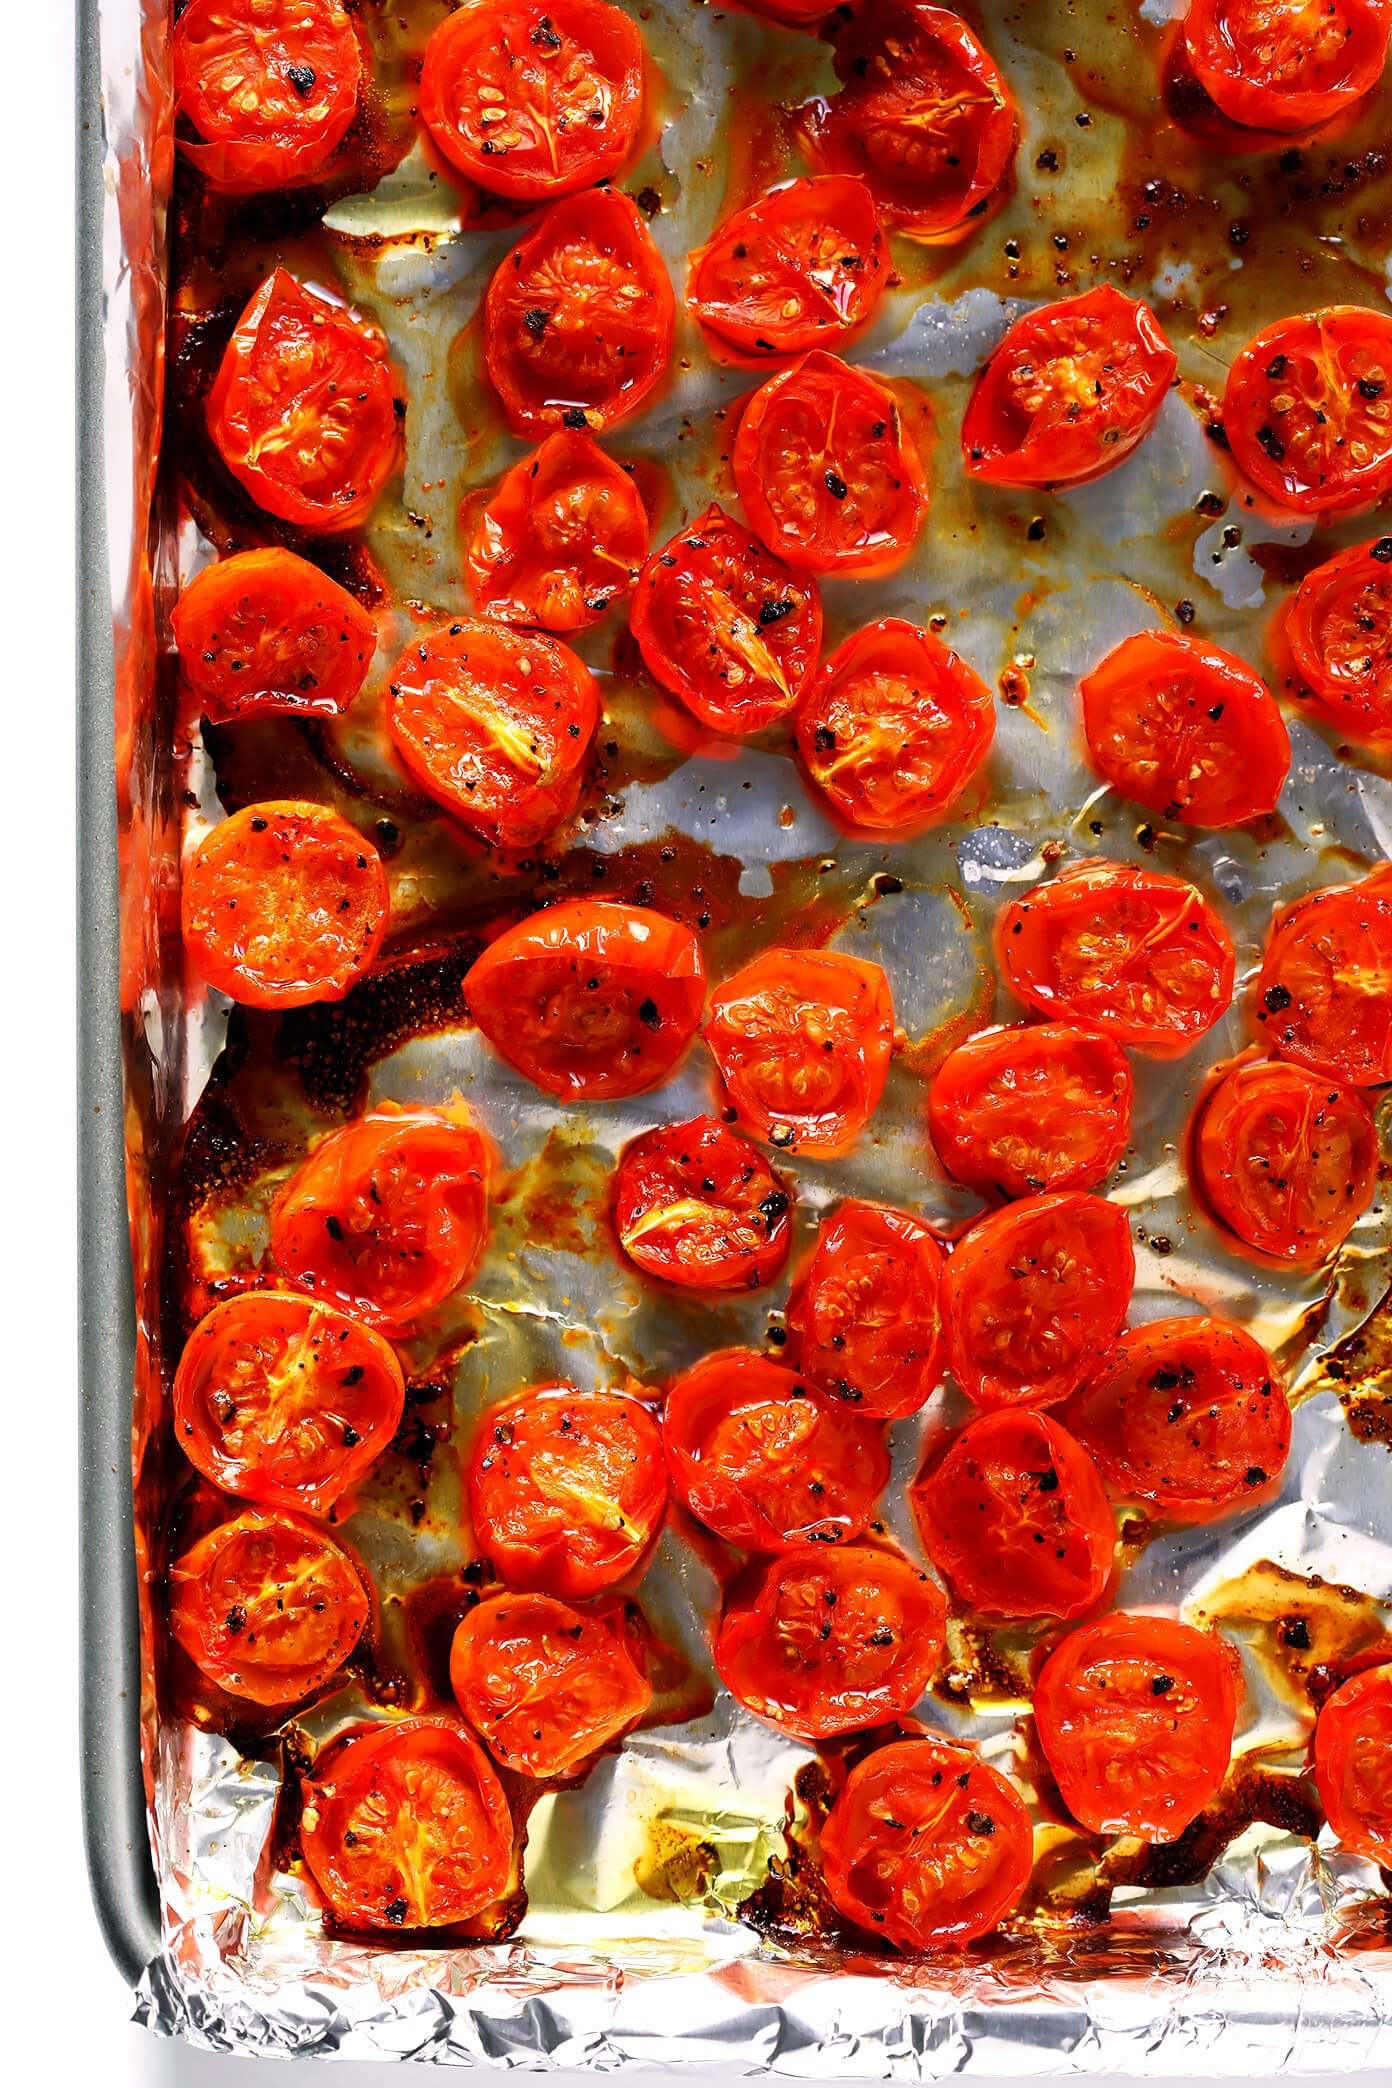 Juicy roasted tomatoes on a sheet pan